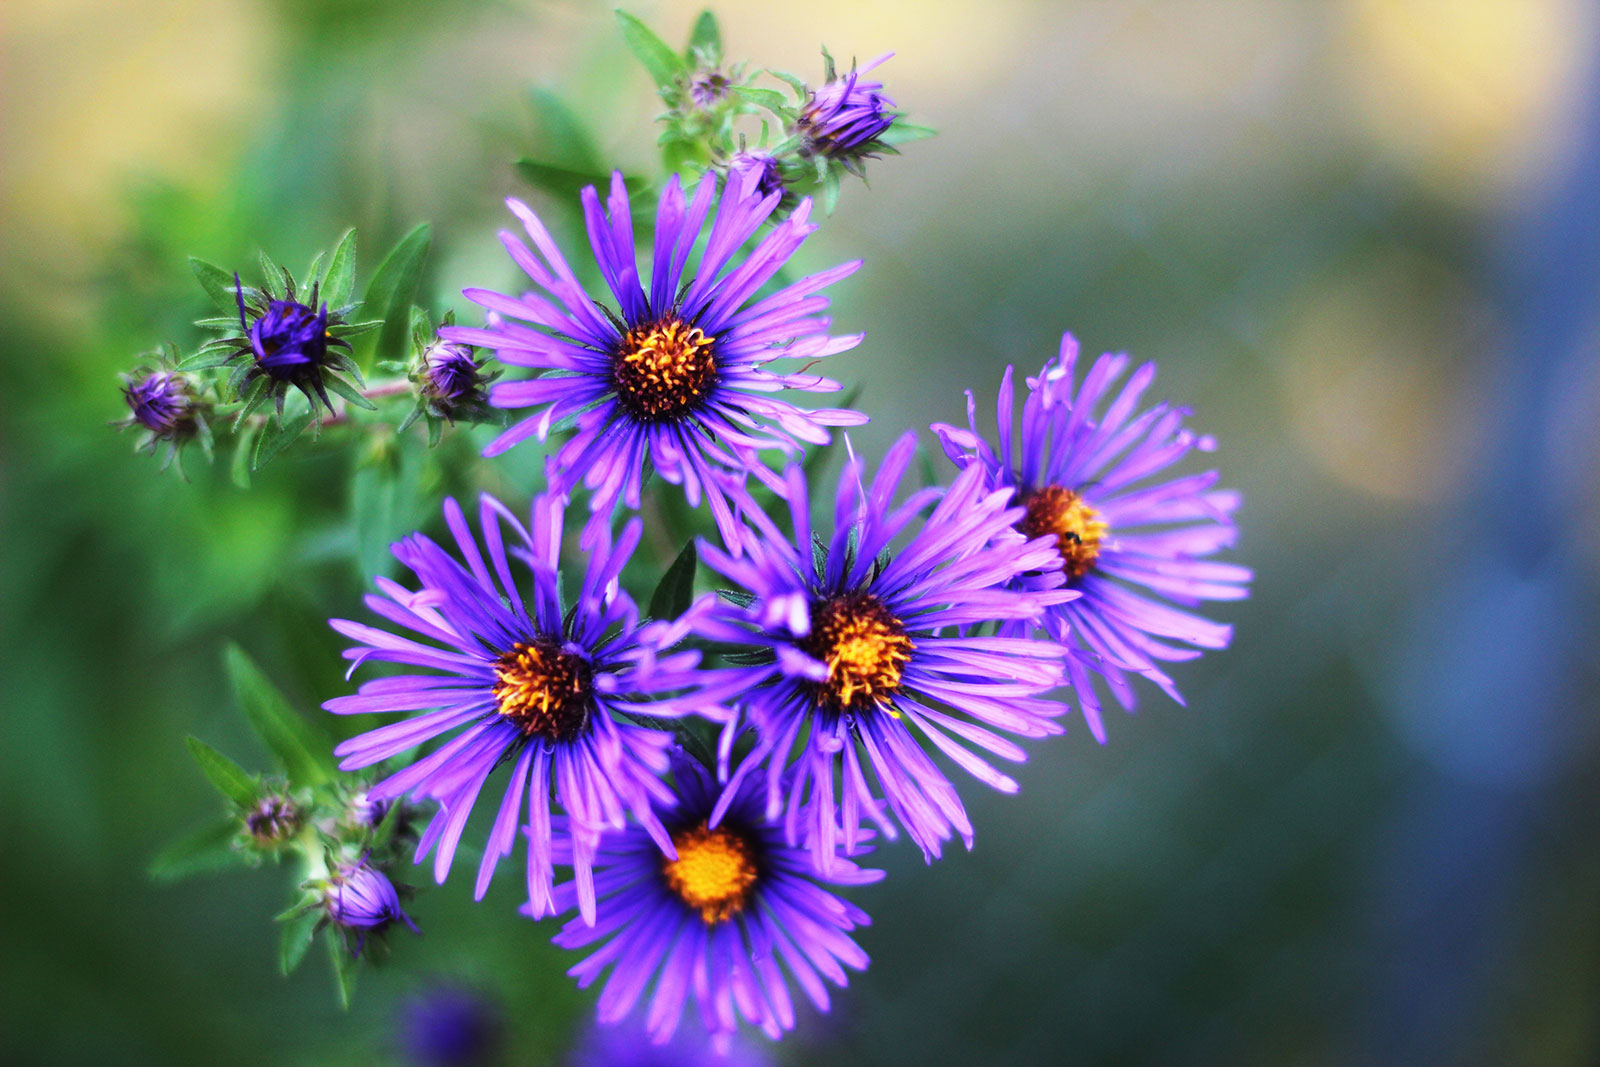 New England Aster by Courtney Celley